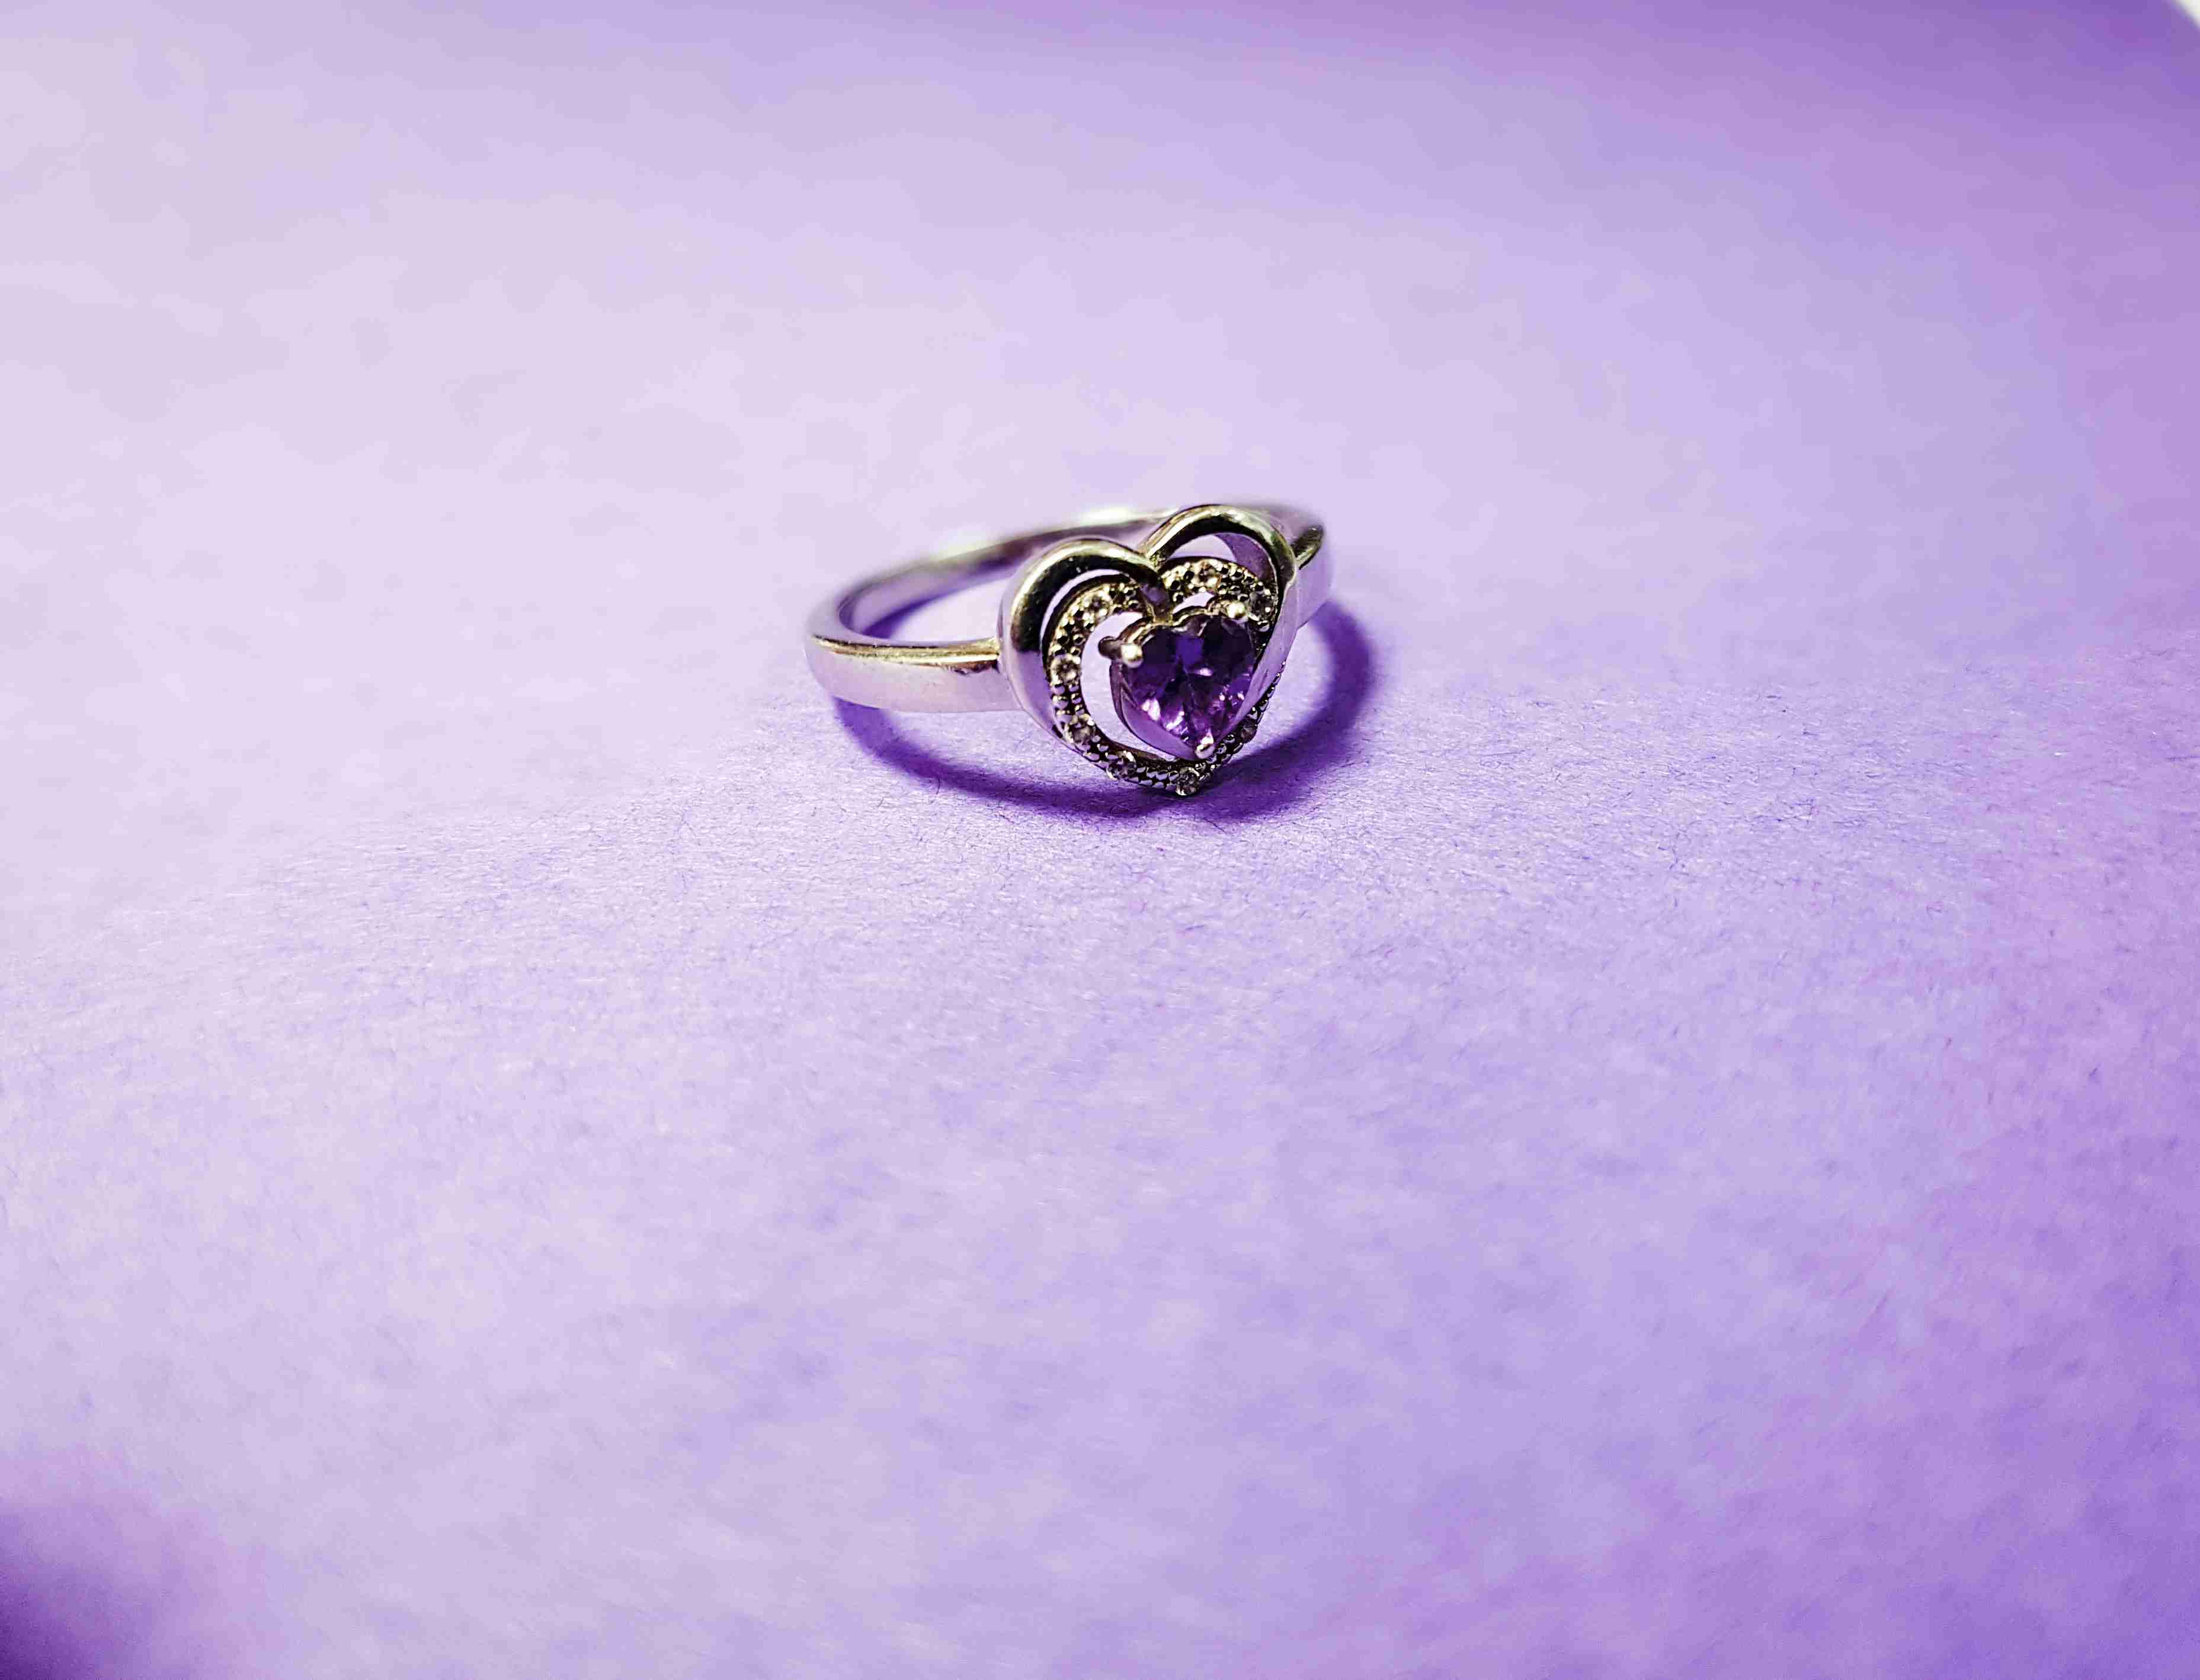 Heart-shaped ring against purple background